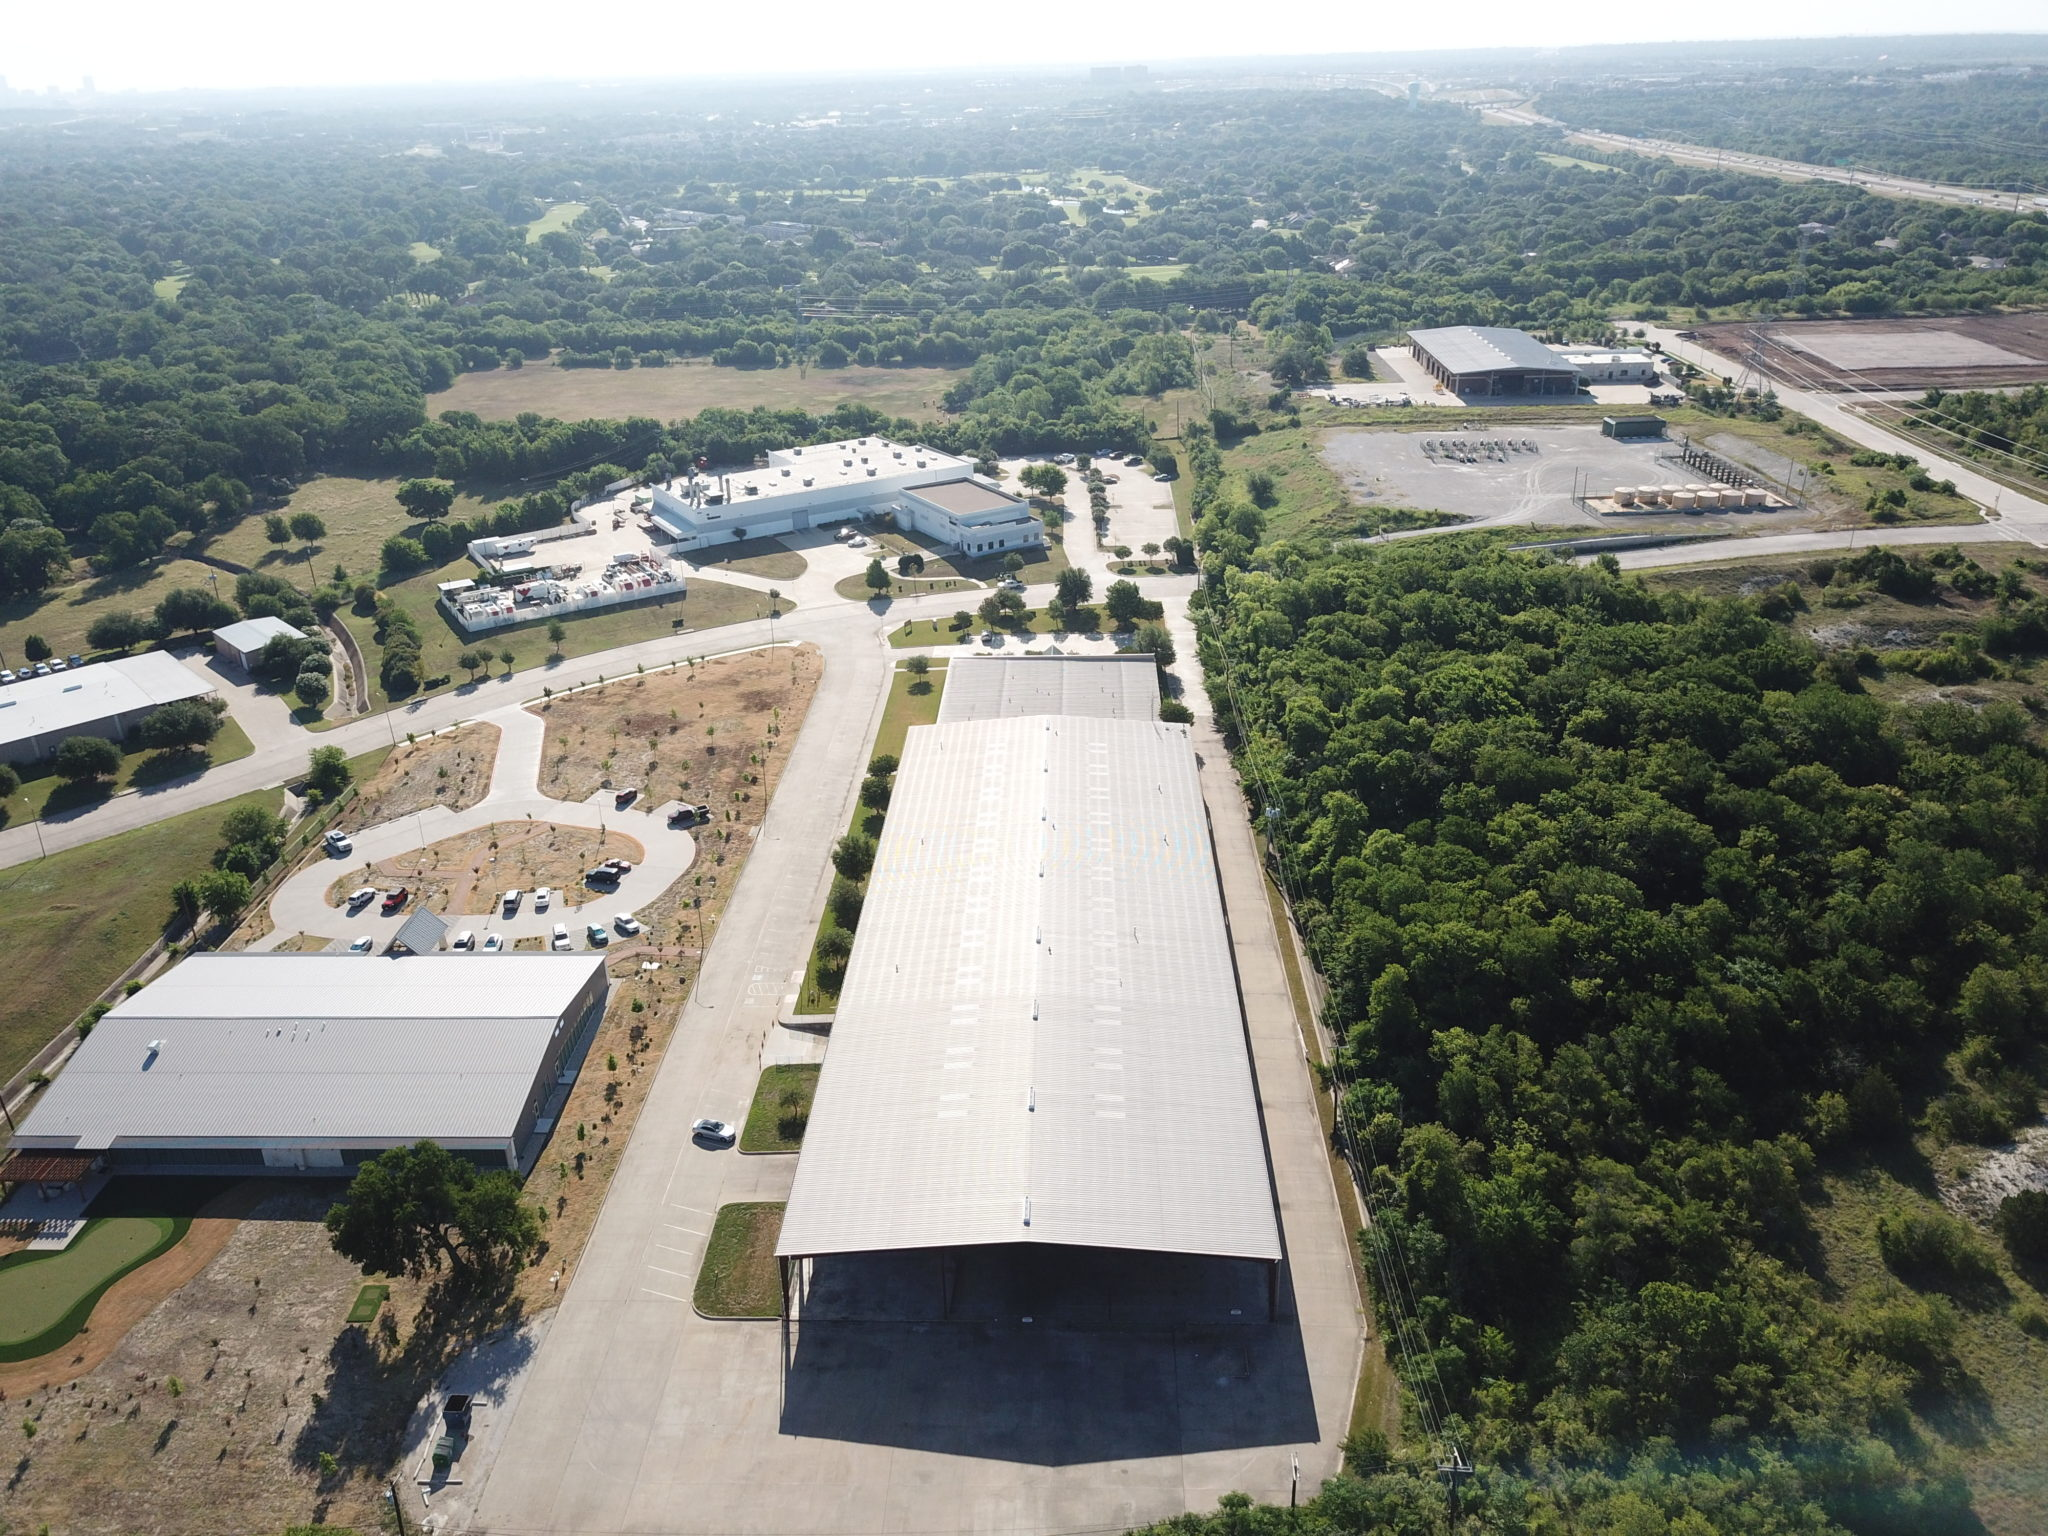 Aerial view of the silver roof of 7471 Benbrook Parkway showing the surrounding buildings and greenery in the background